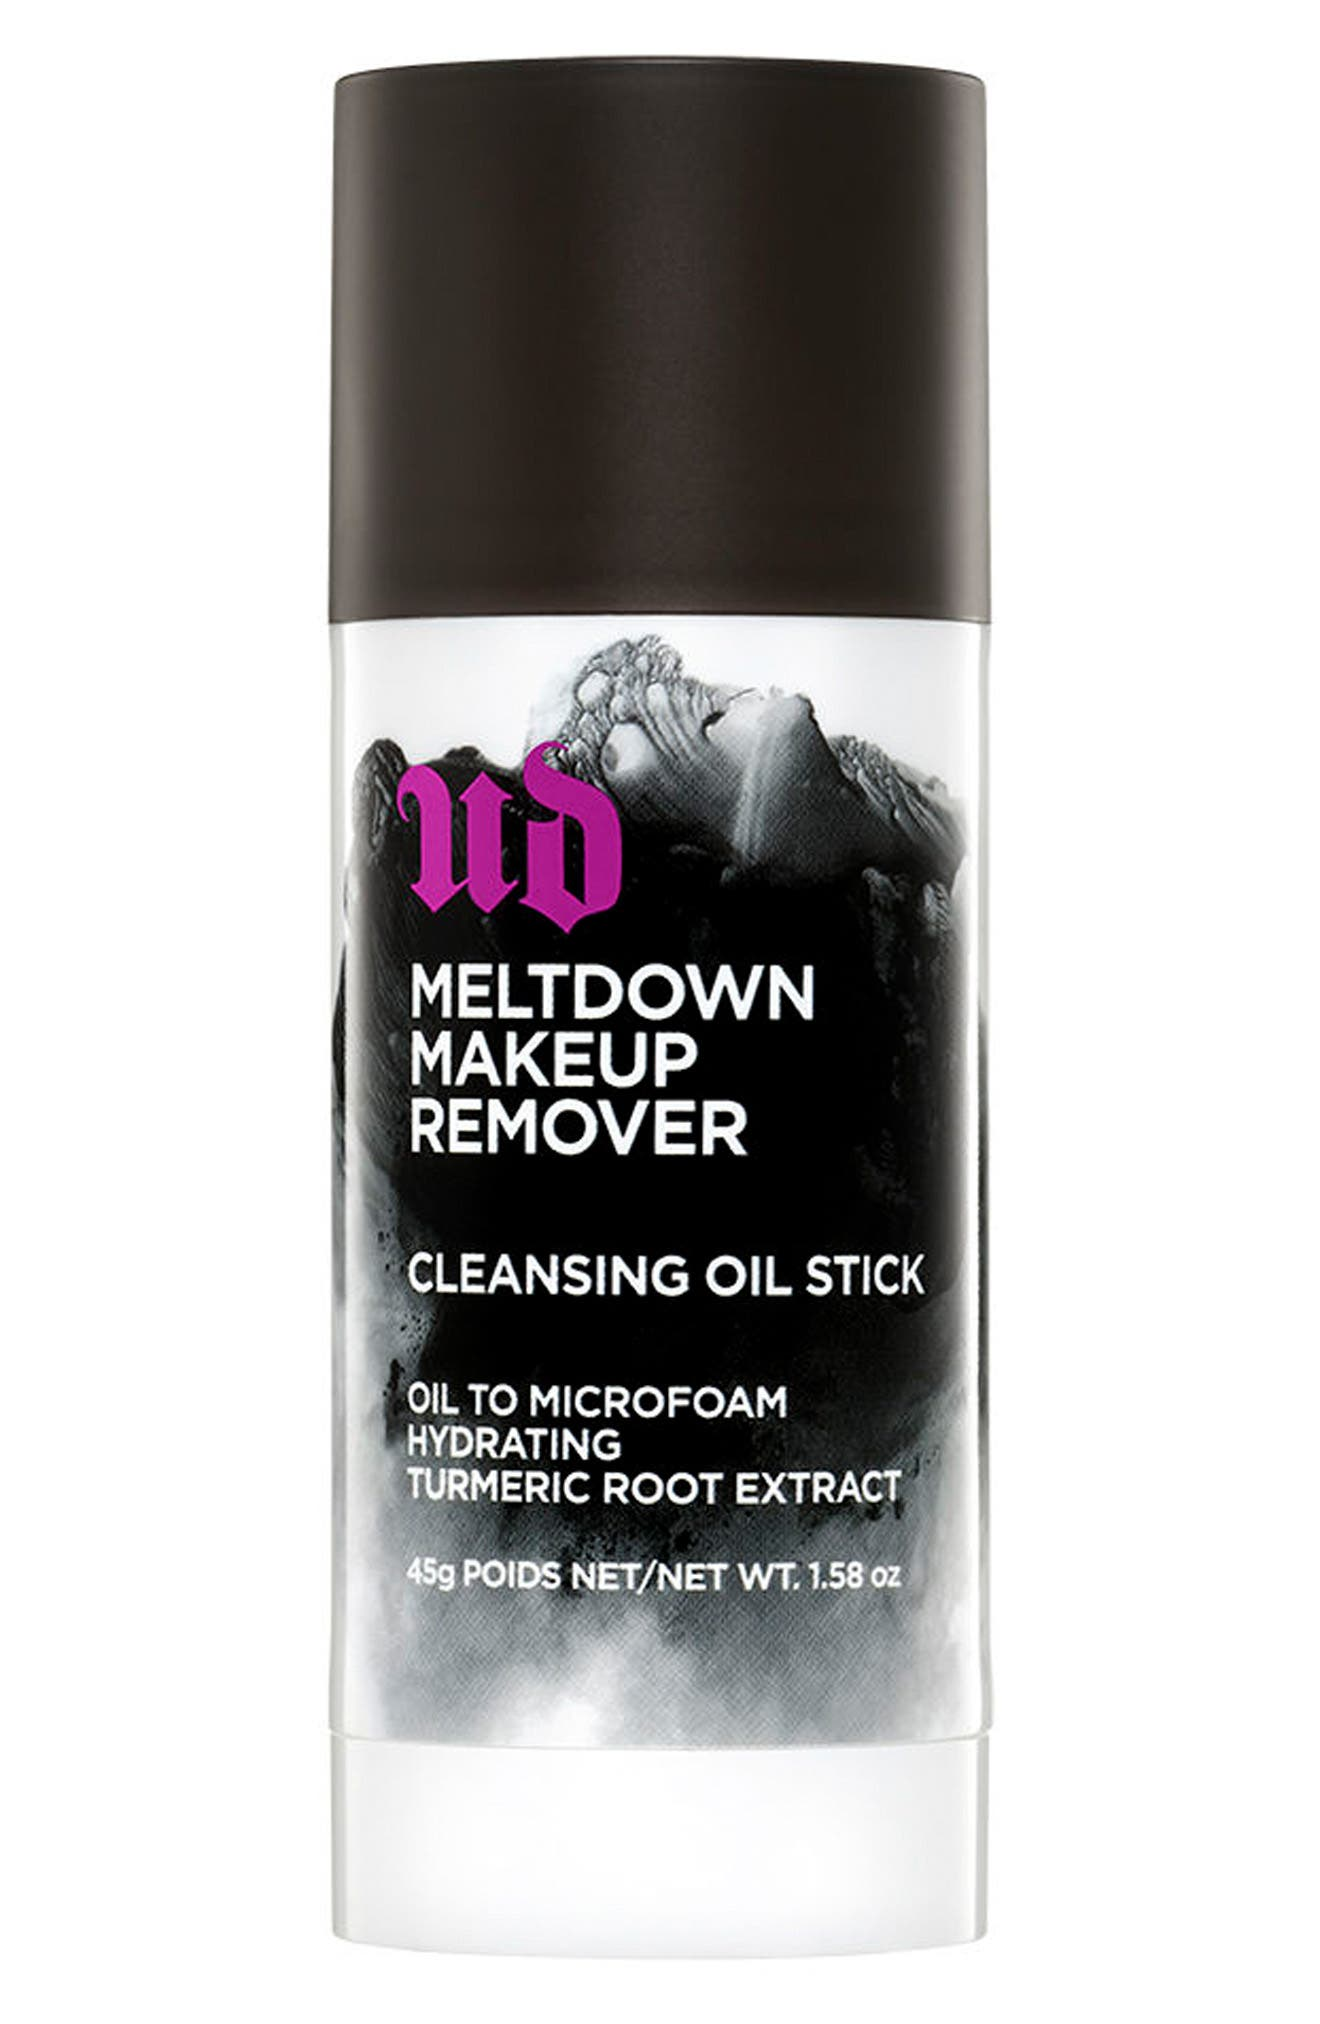 What it is: You can\\\'t get enough of Urban Decay\\\'s long-lasting products, but how do you take them off? With Meltdown Makeup Remover Cleansing Oil Stick. What it does: Formulated to easily remove even the most stubborn waterproof makeup, this cleansing oil stick is as powerful as it is gentle. Non-irritating, nourishing ingredients leave skin clean, refreshed and without a trace of makeup. Meltdown hydrates, yet never leaves a greasy residue.